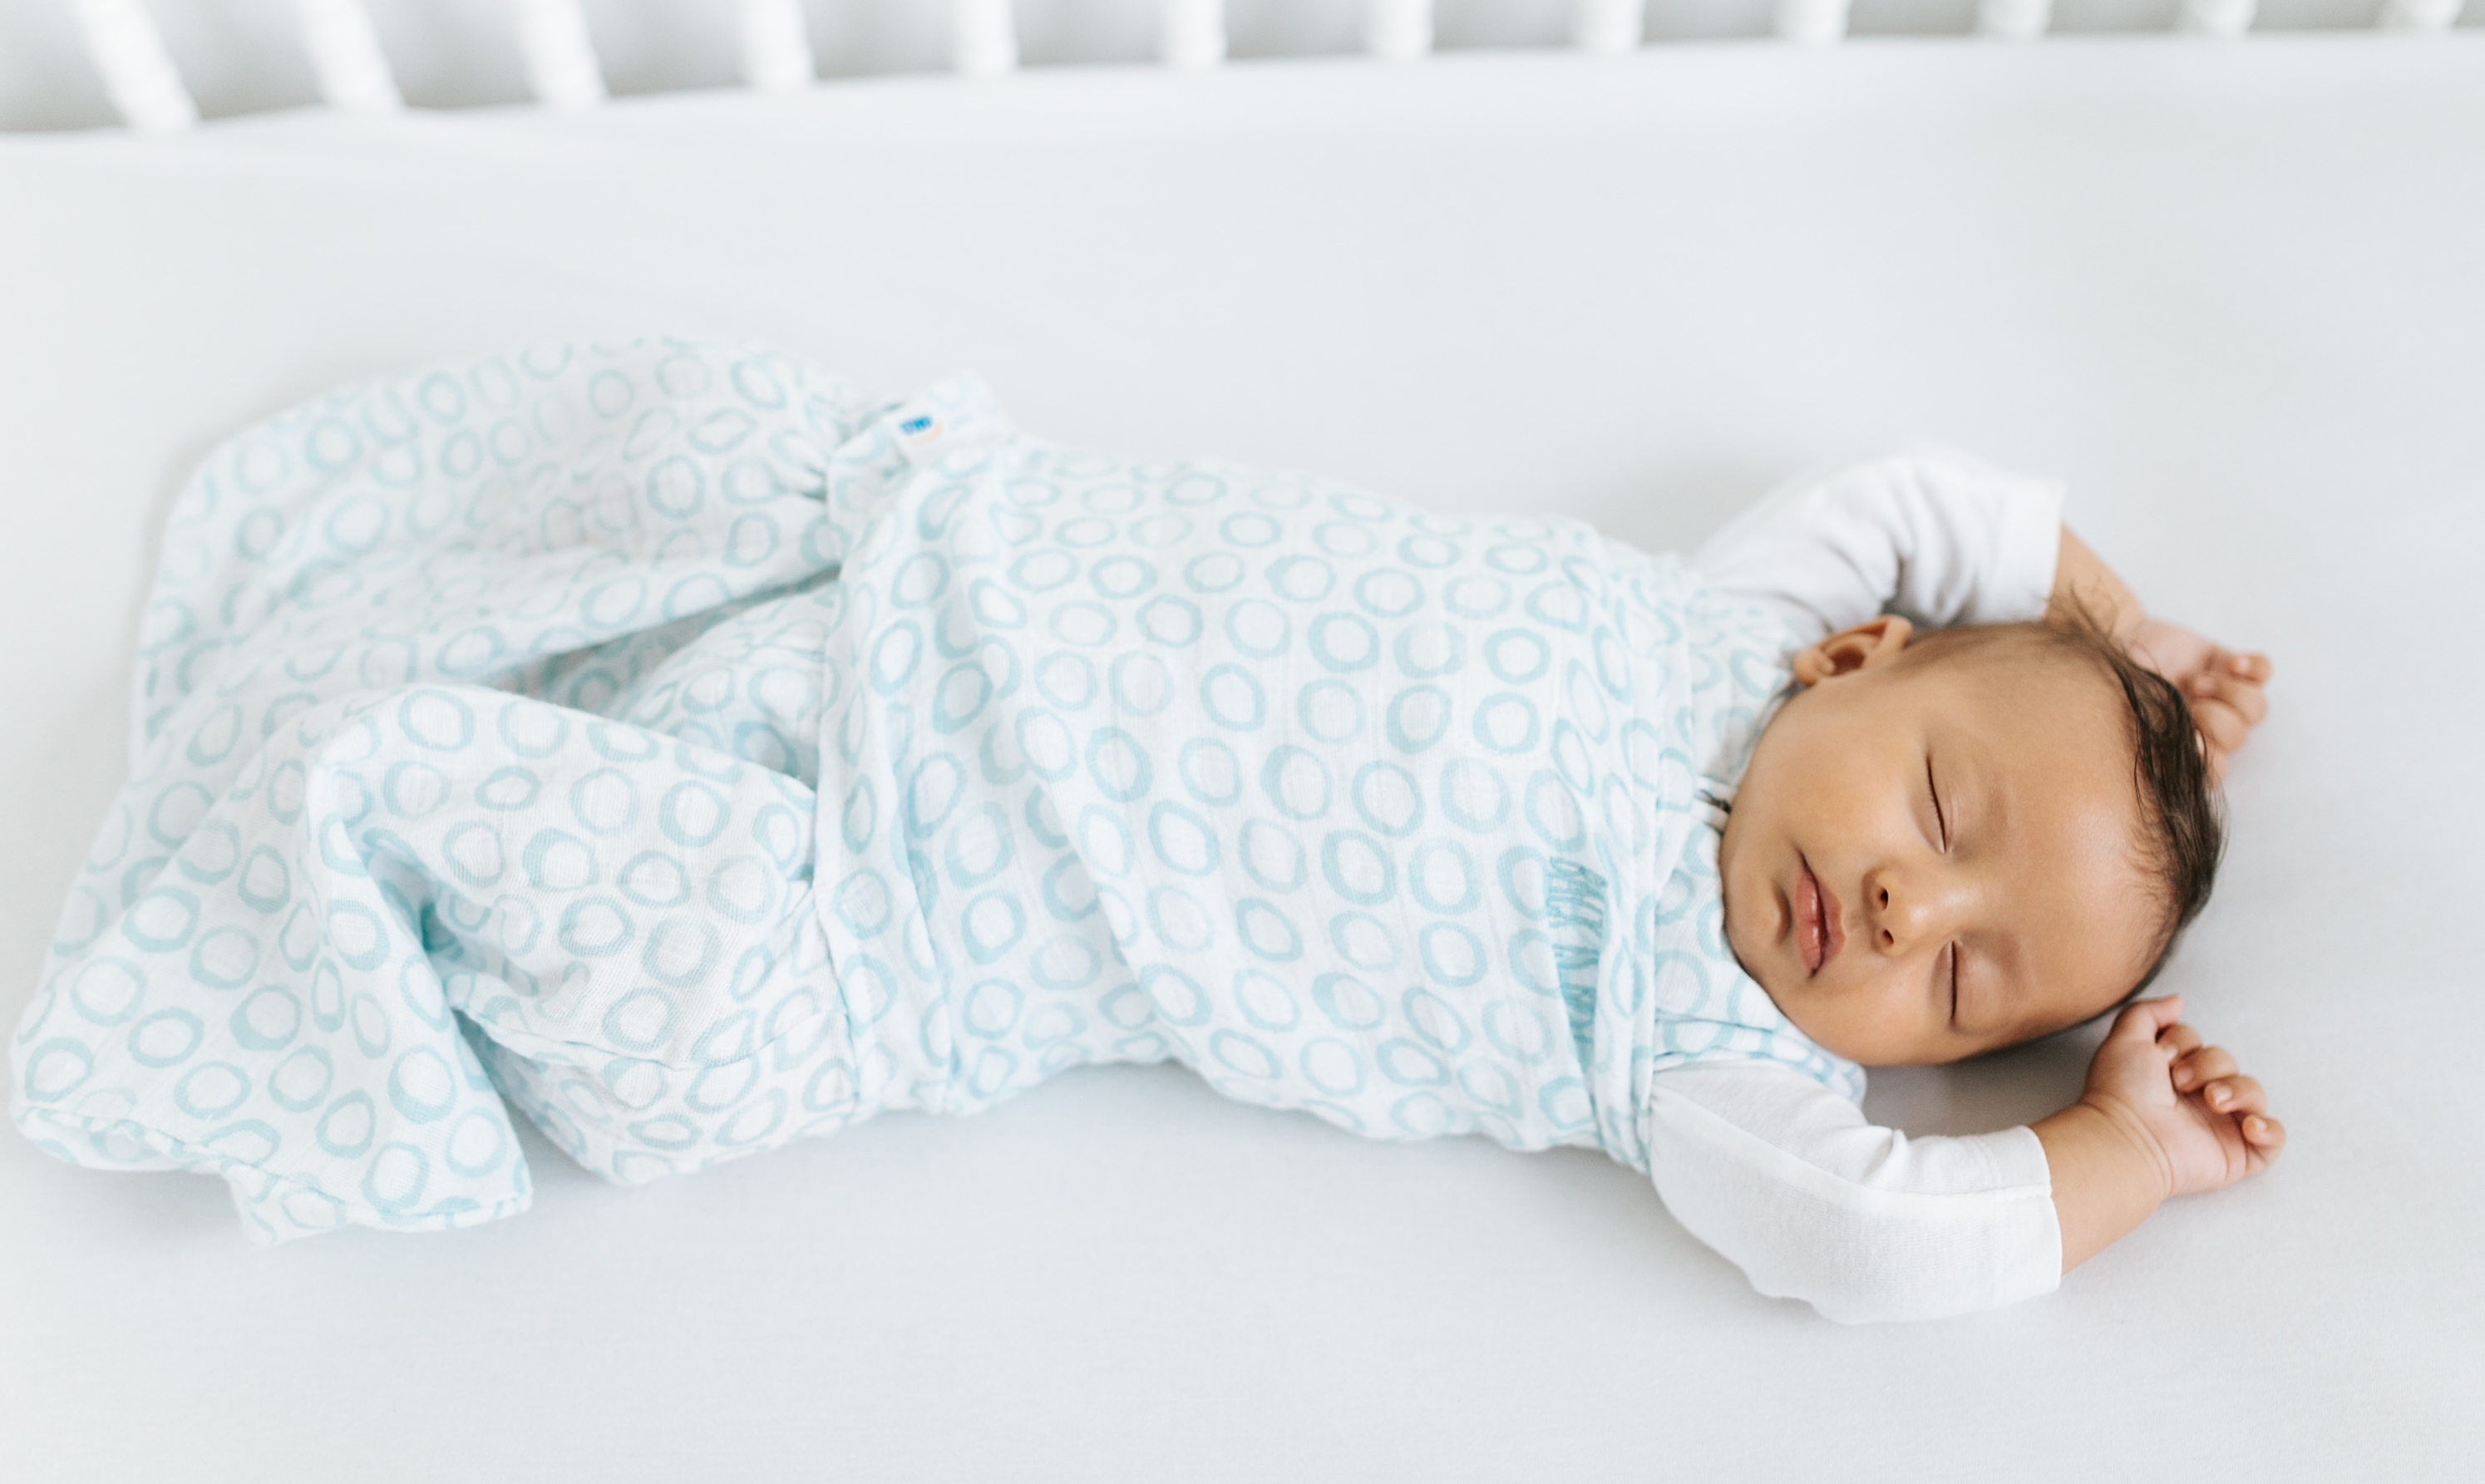 baby sleeping with arms unwrapped from halo sleepsack swaddle